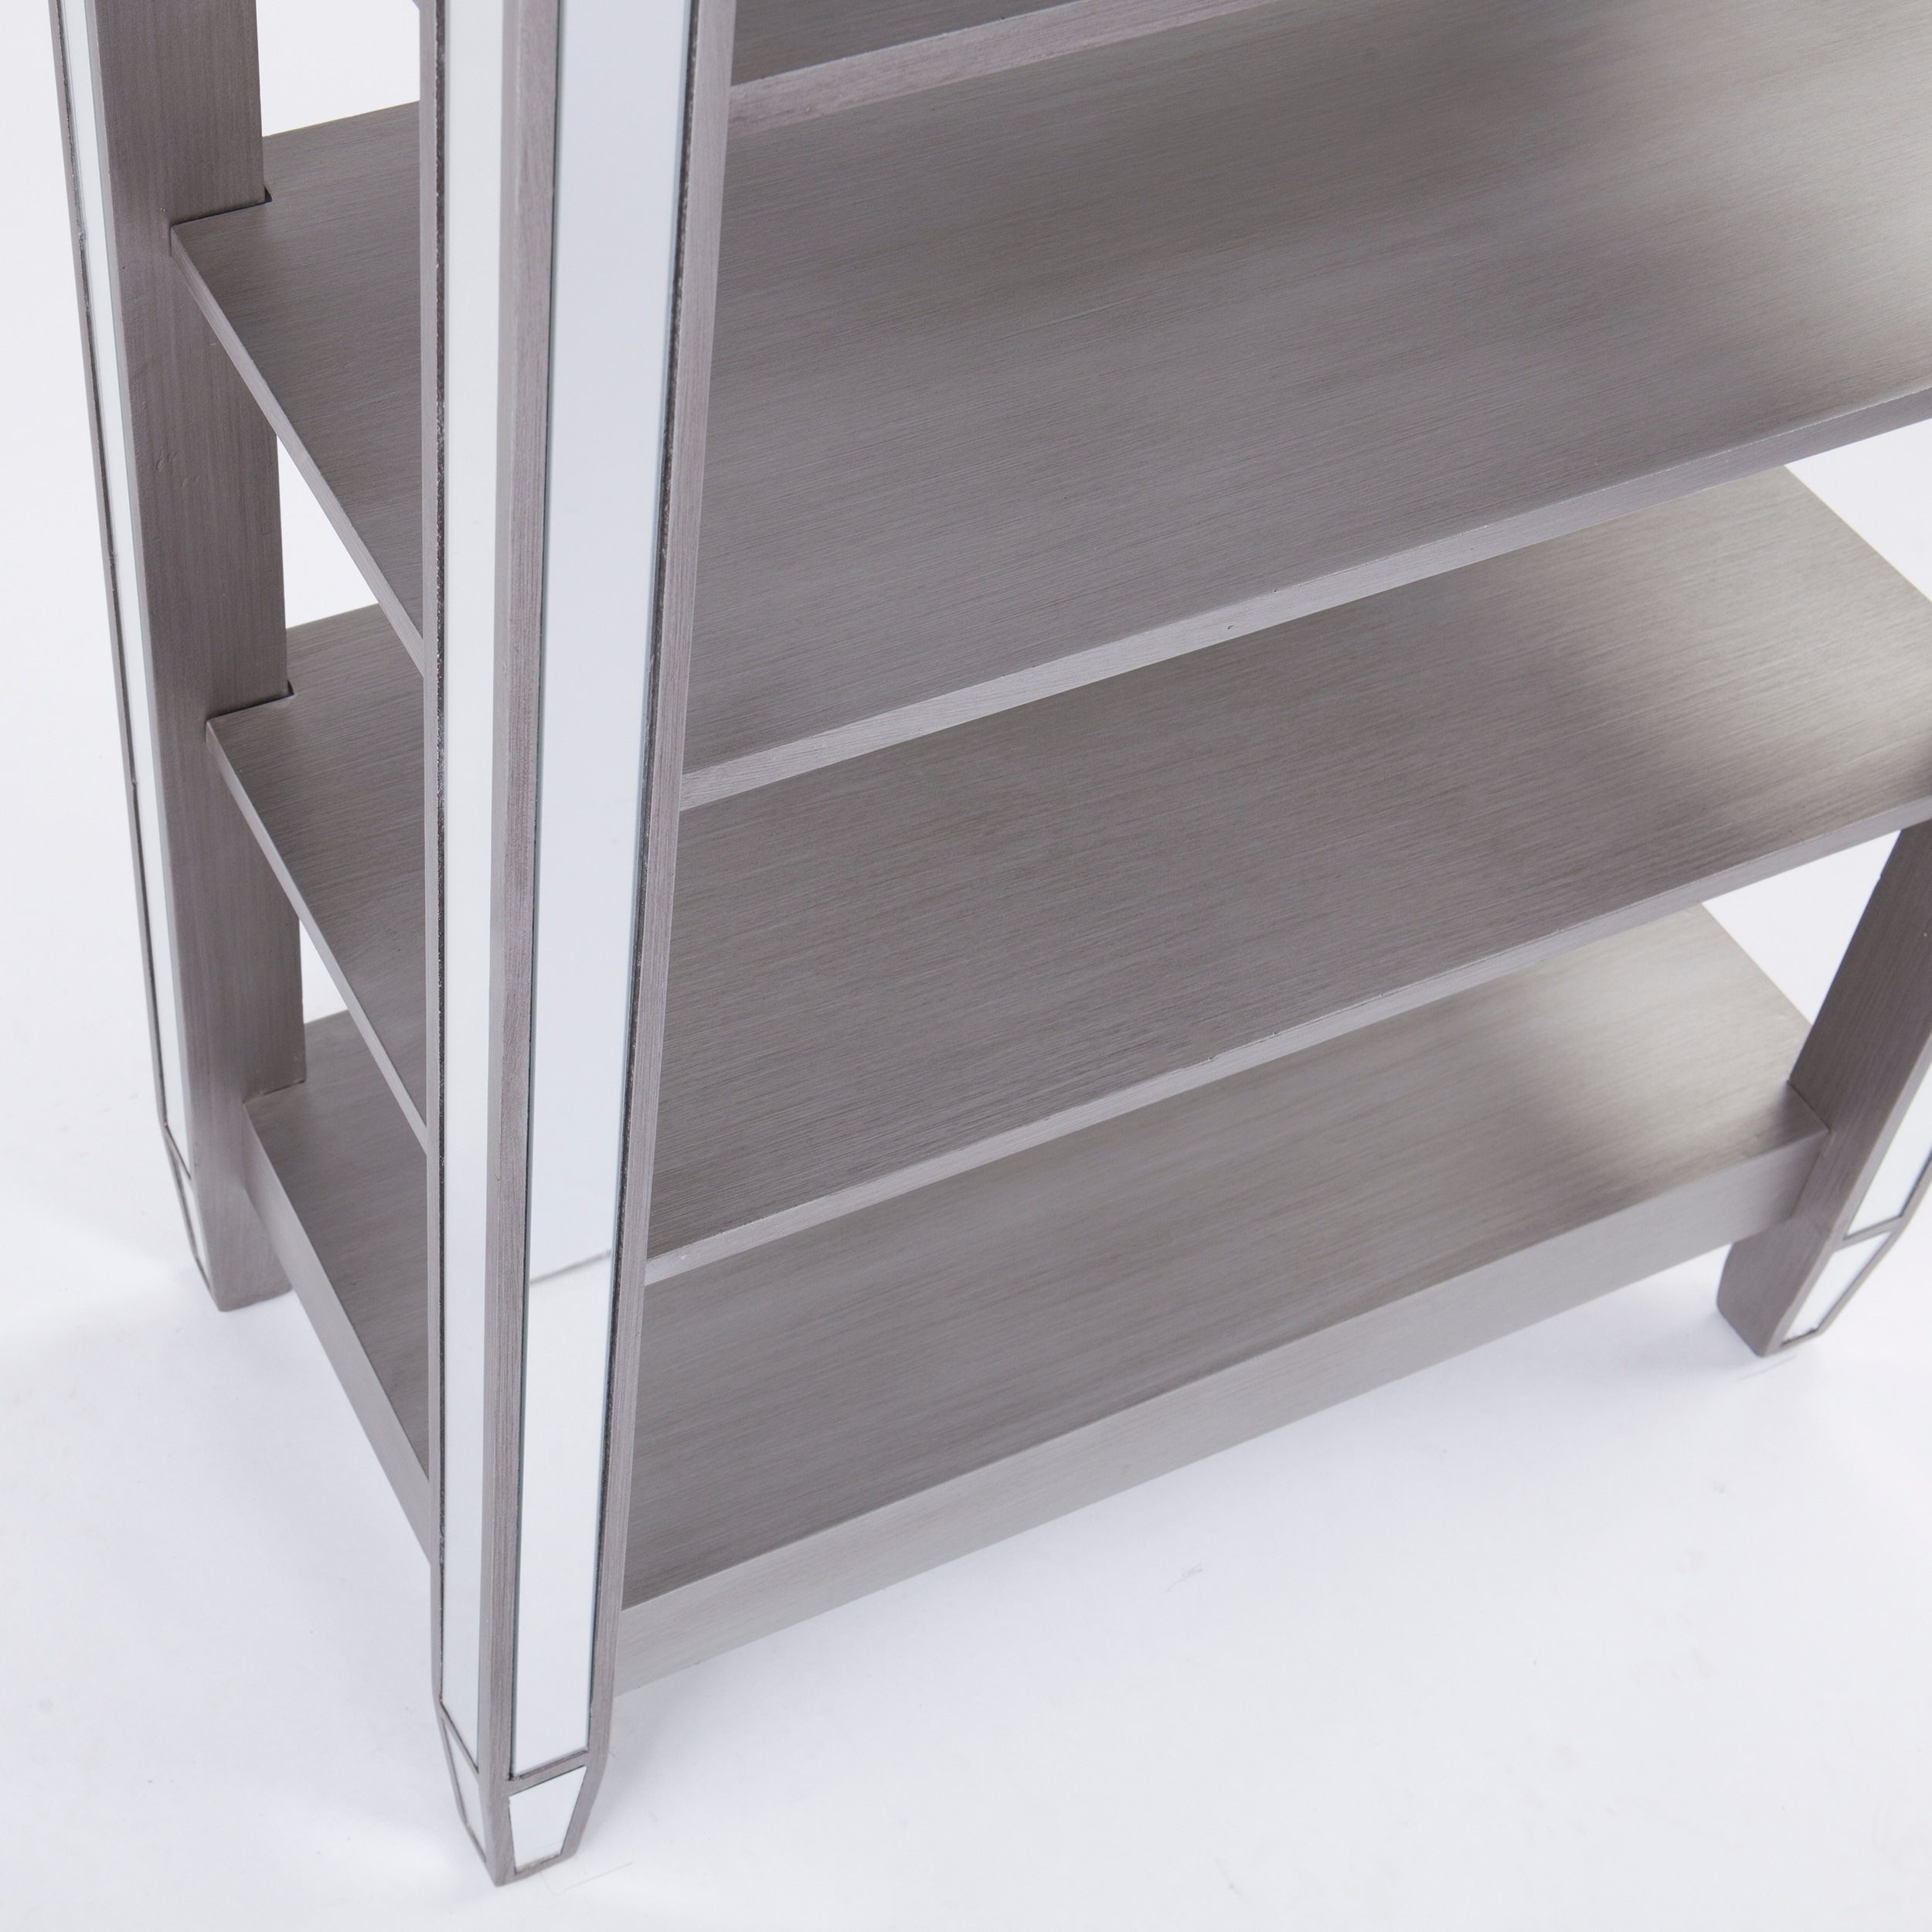 task adams cabinet helix our rolling hero cart bookcases white filing latest inside goop lamp gas and design desk allmodern armchairs tps desks decorating acacia style go drawer bookcase makeover office